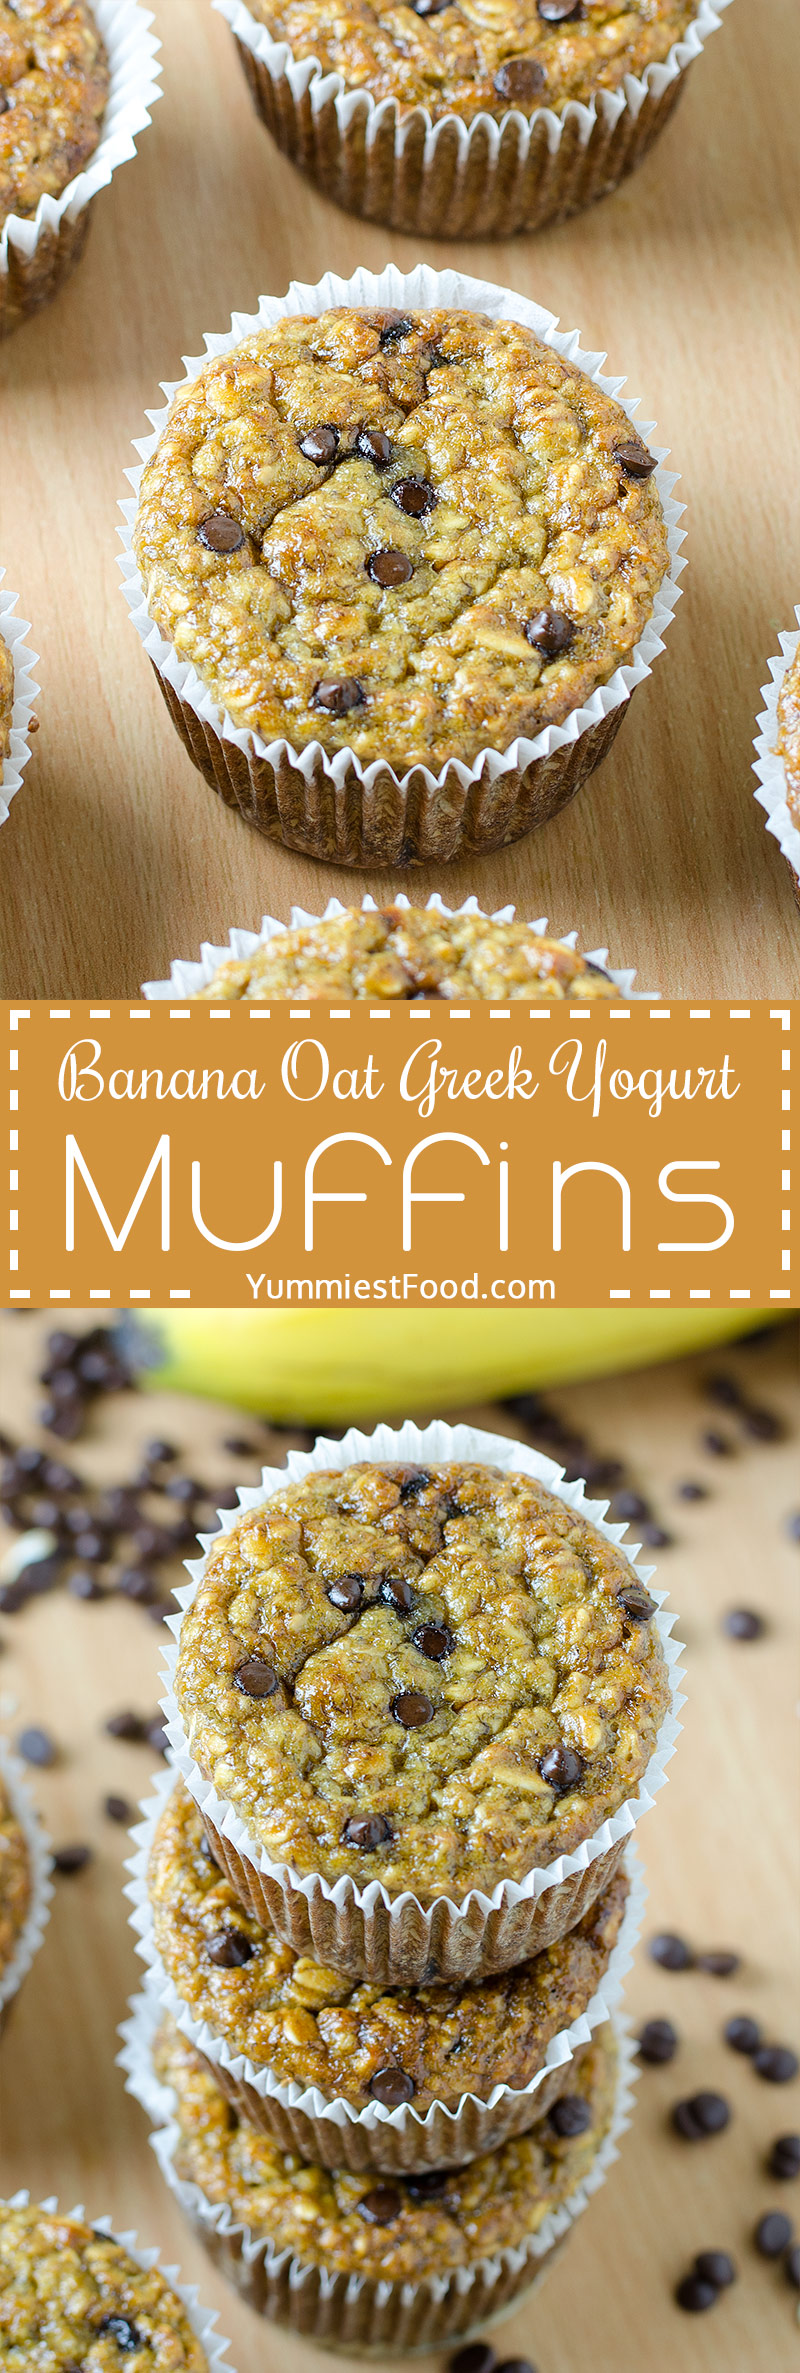 HEALTHY BANANA OAT GREEK YOGURT MUFFINS with CHOCOLATE CHIPS - Healthy, Easy muffins made in a blender